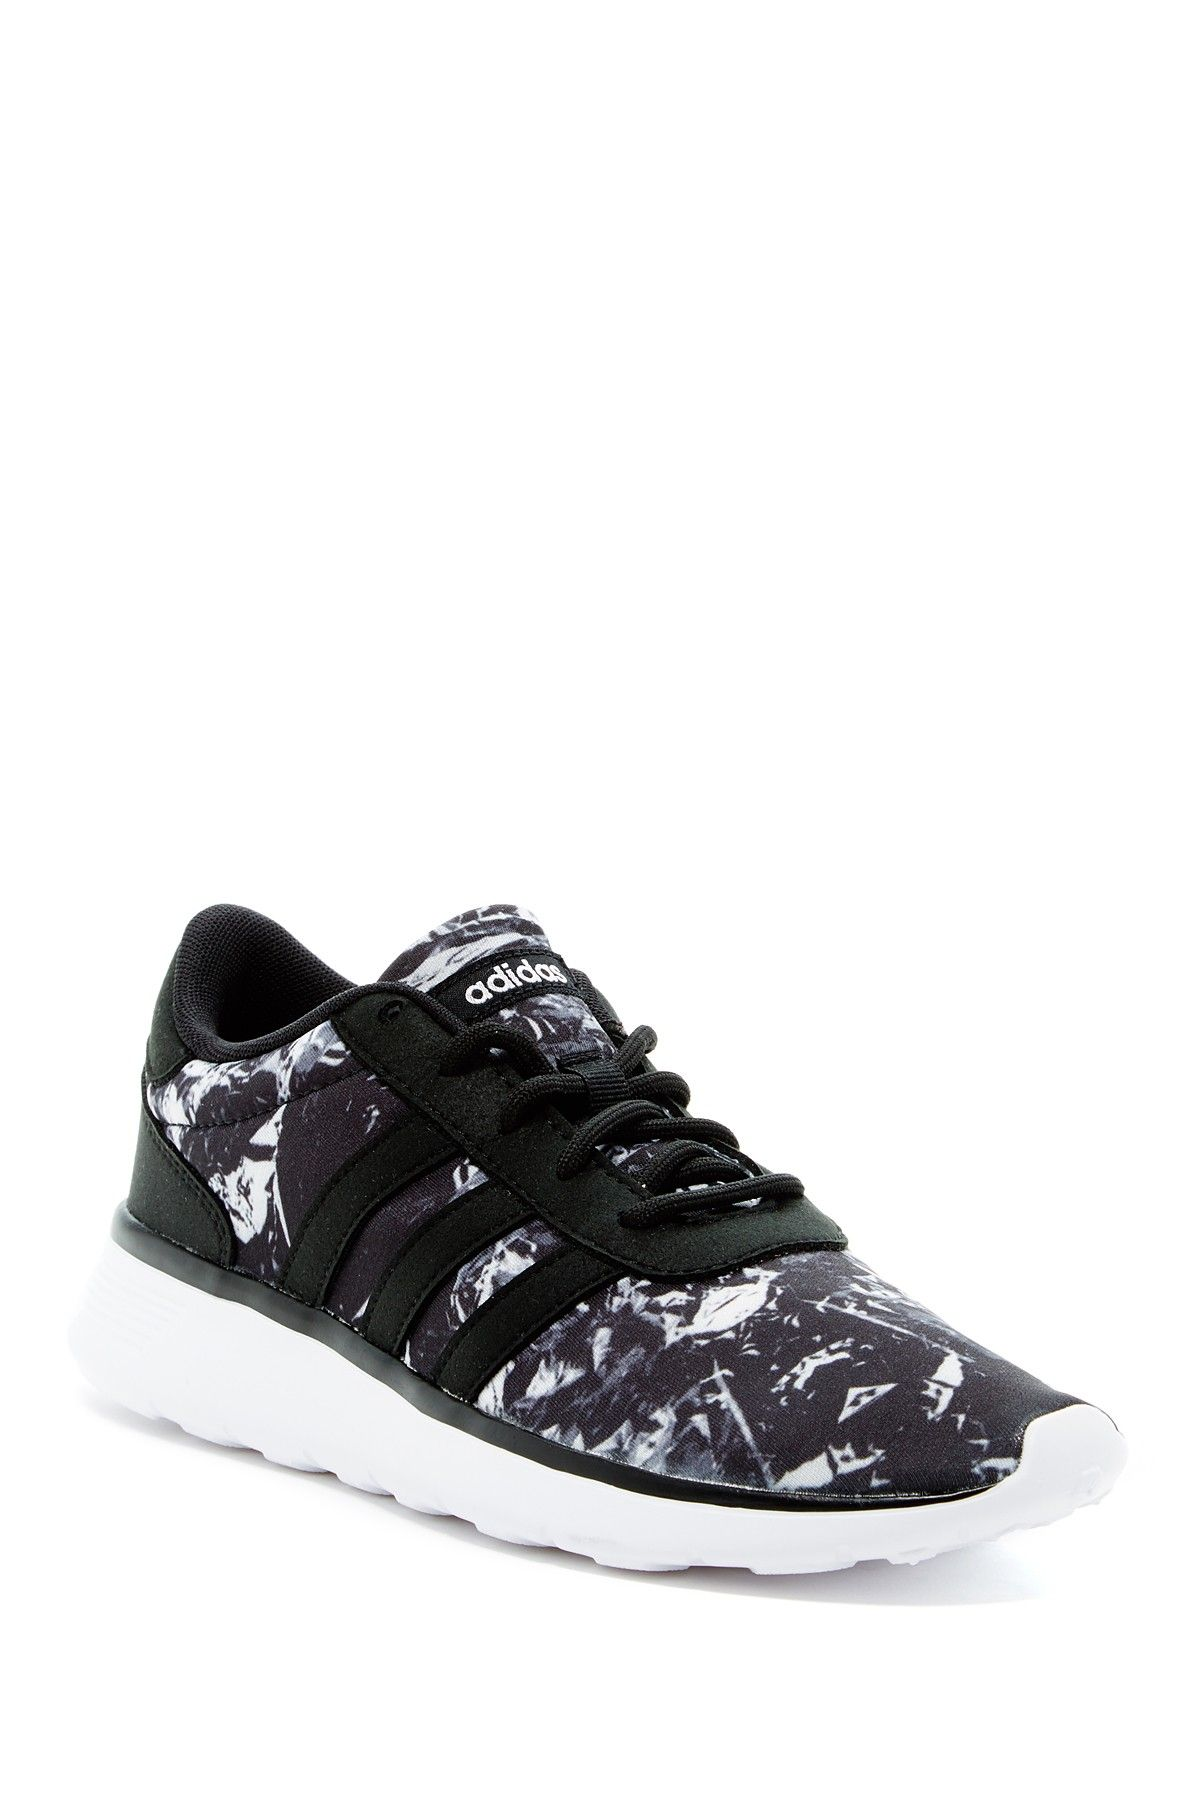 Adidas On Hautelook Tennis Shoes Sneakers Adidas Lite Racer Running Shoes